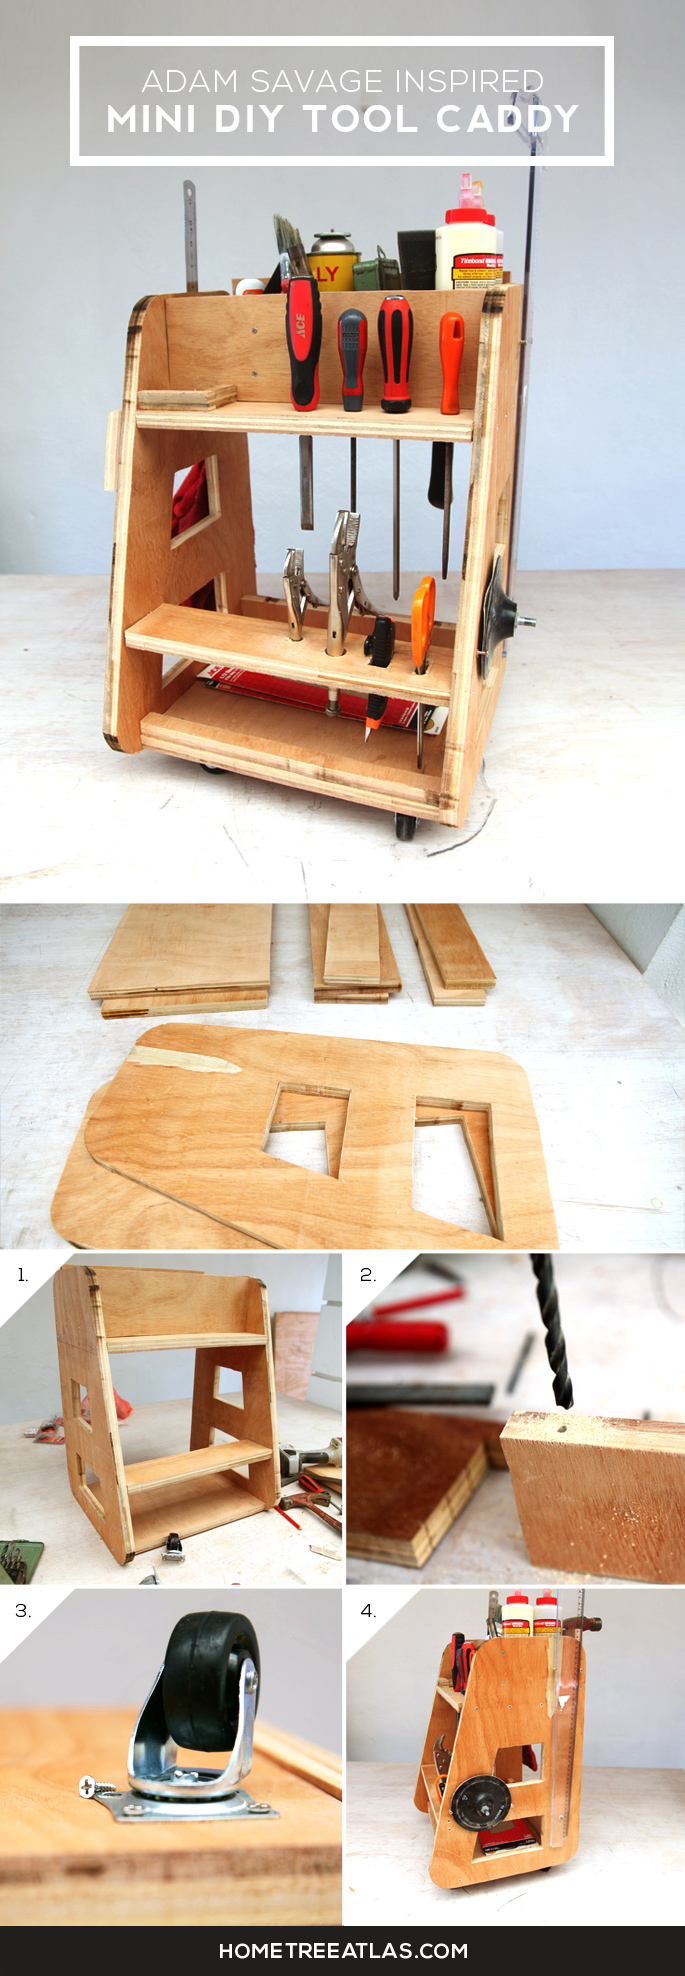 diy tool caddy inspired by adam savage from mythbusters home tree atlas. Black Bedroom Furniture Sets. Home Design Ideas